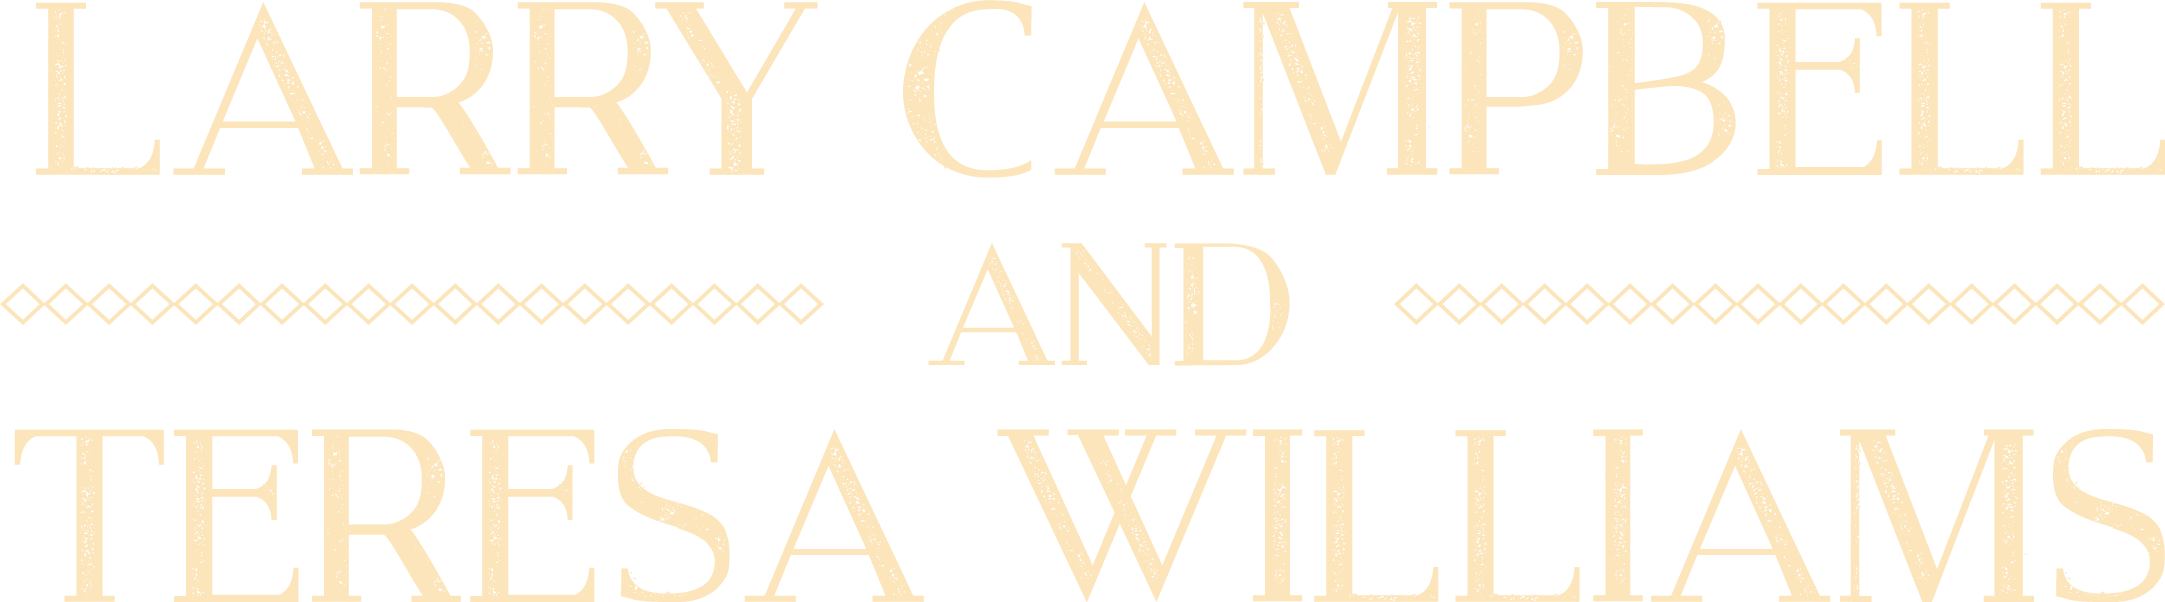 Official Website of Larry Campbell and Teresa Williams